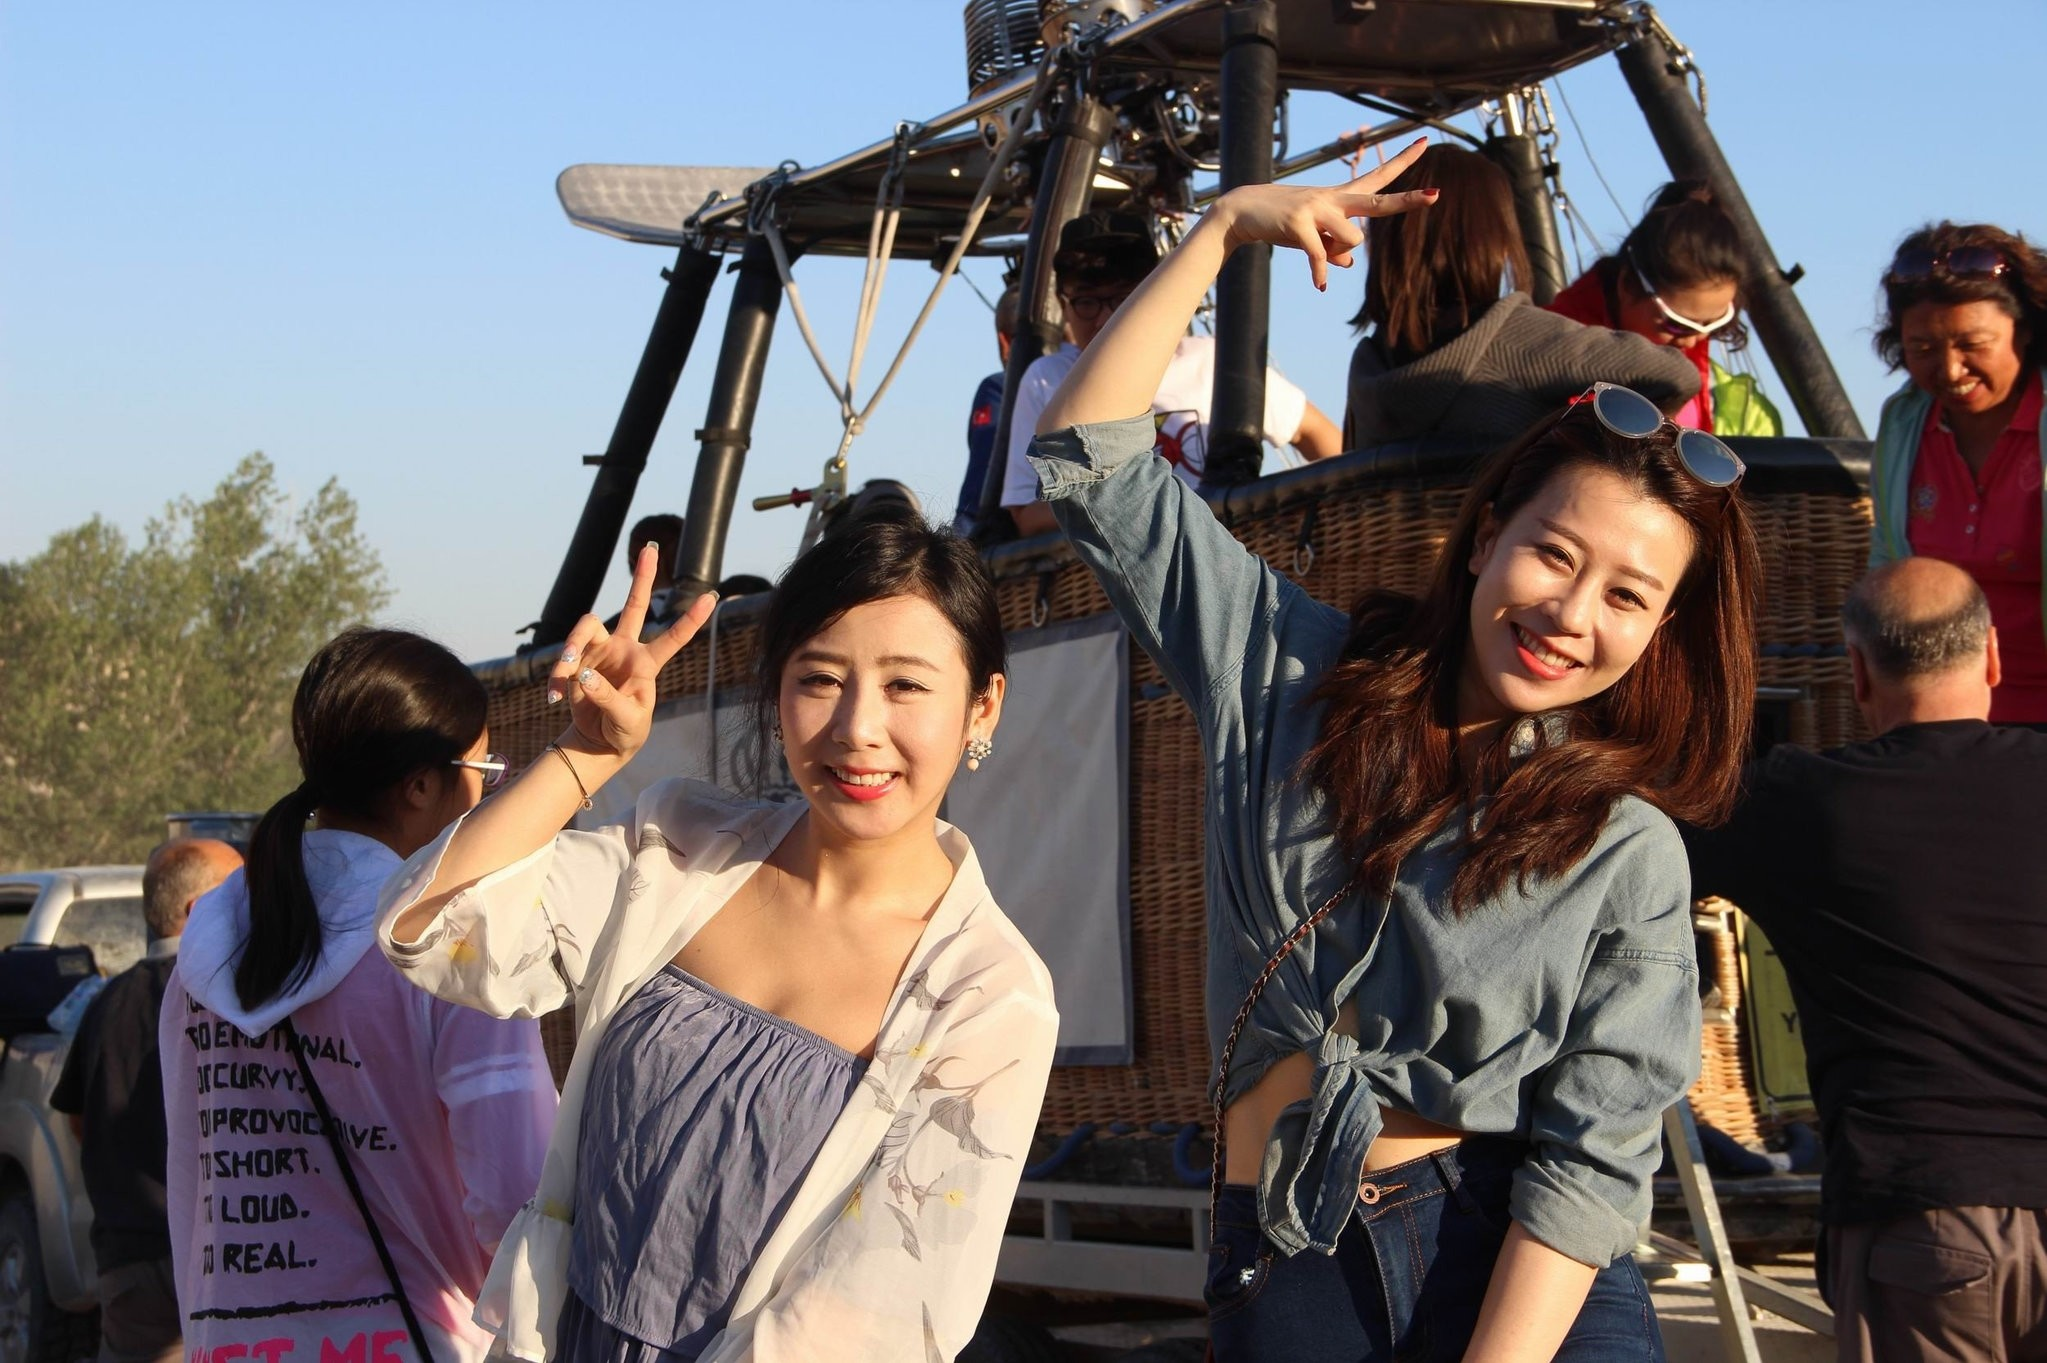 Chinese tourists particularly frequent Turkey's Cappadocia where they enjoy balloon riding, as well as Pamukkale, Safranbolu, Istanbul, Konya and the Black Sea.